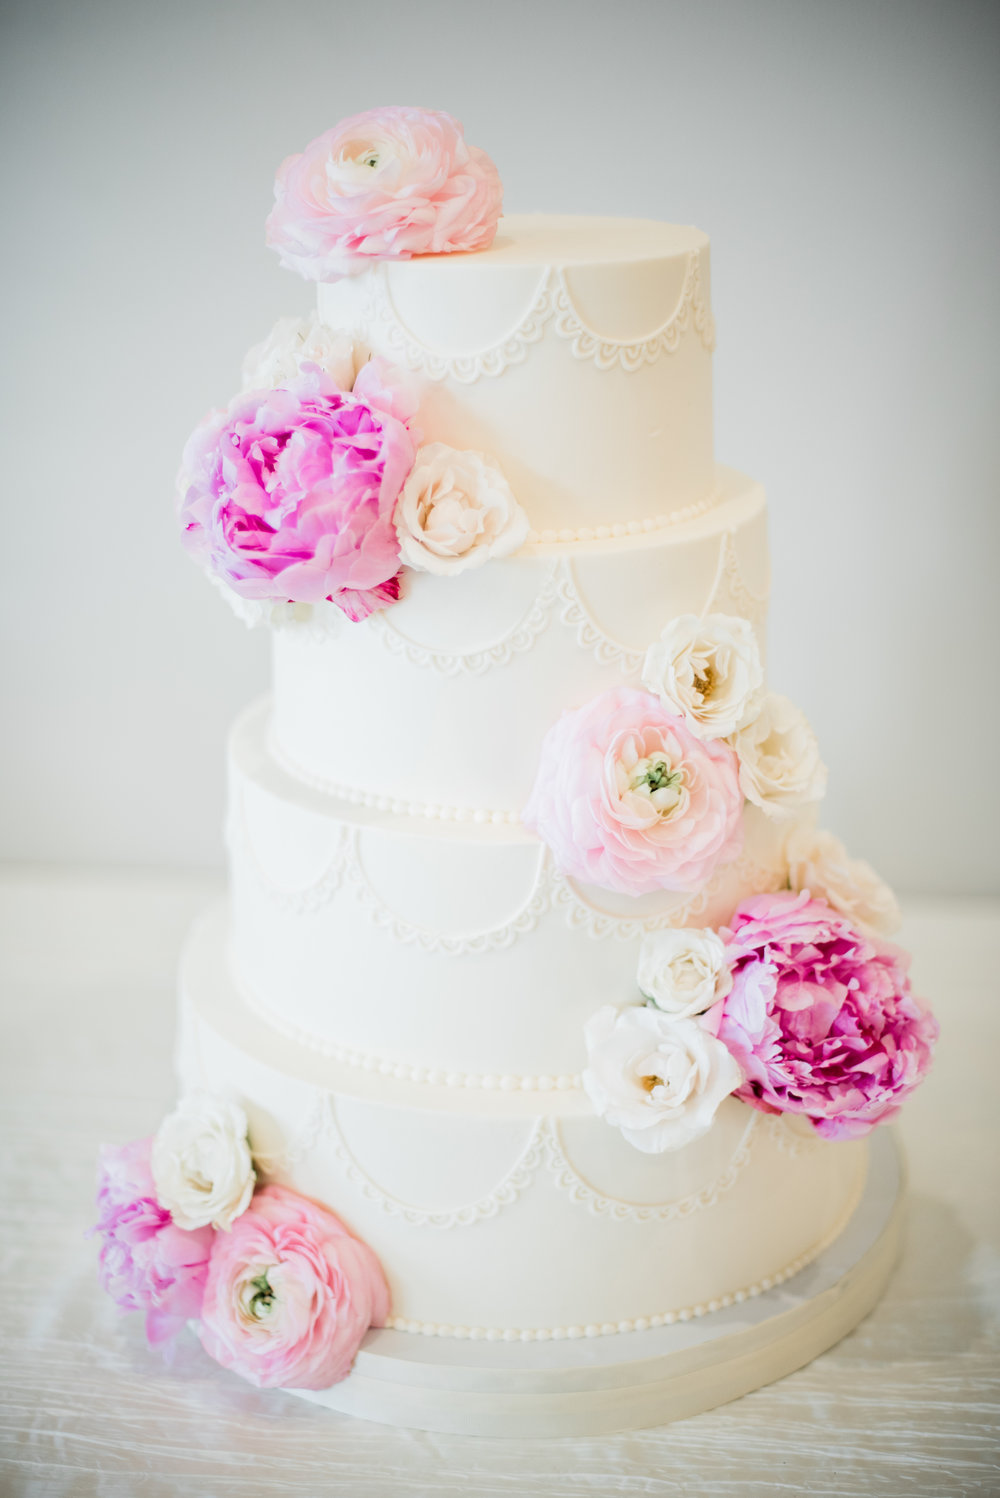 ELEGANT WEDDING CAKE.jpg